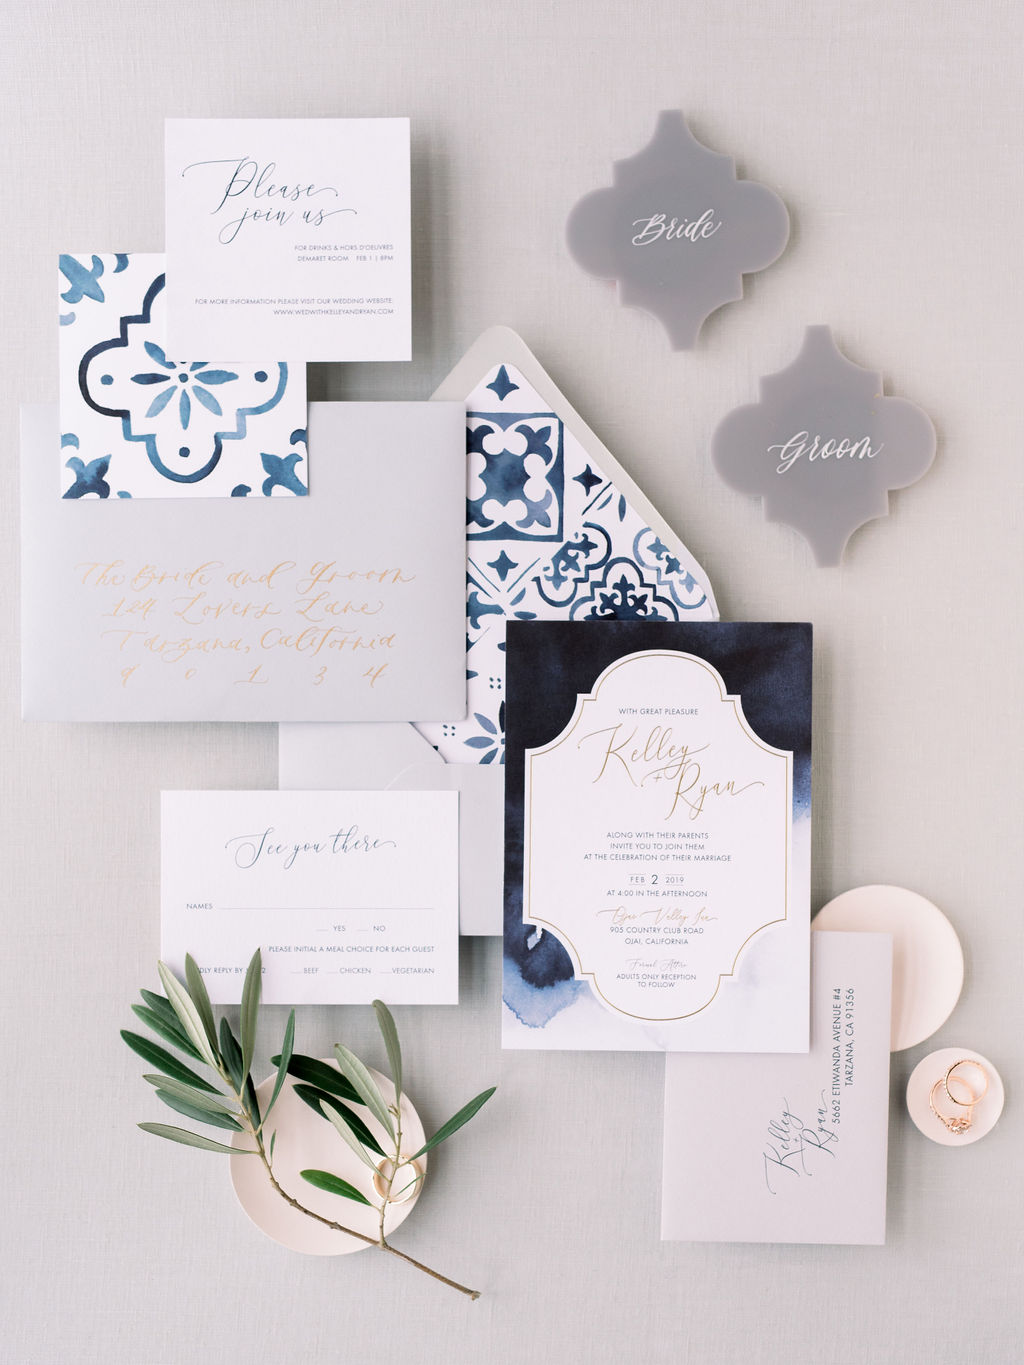 Design by Laney  |  Making the Transition from Calligrapher to Stationer